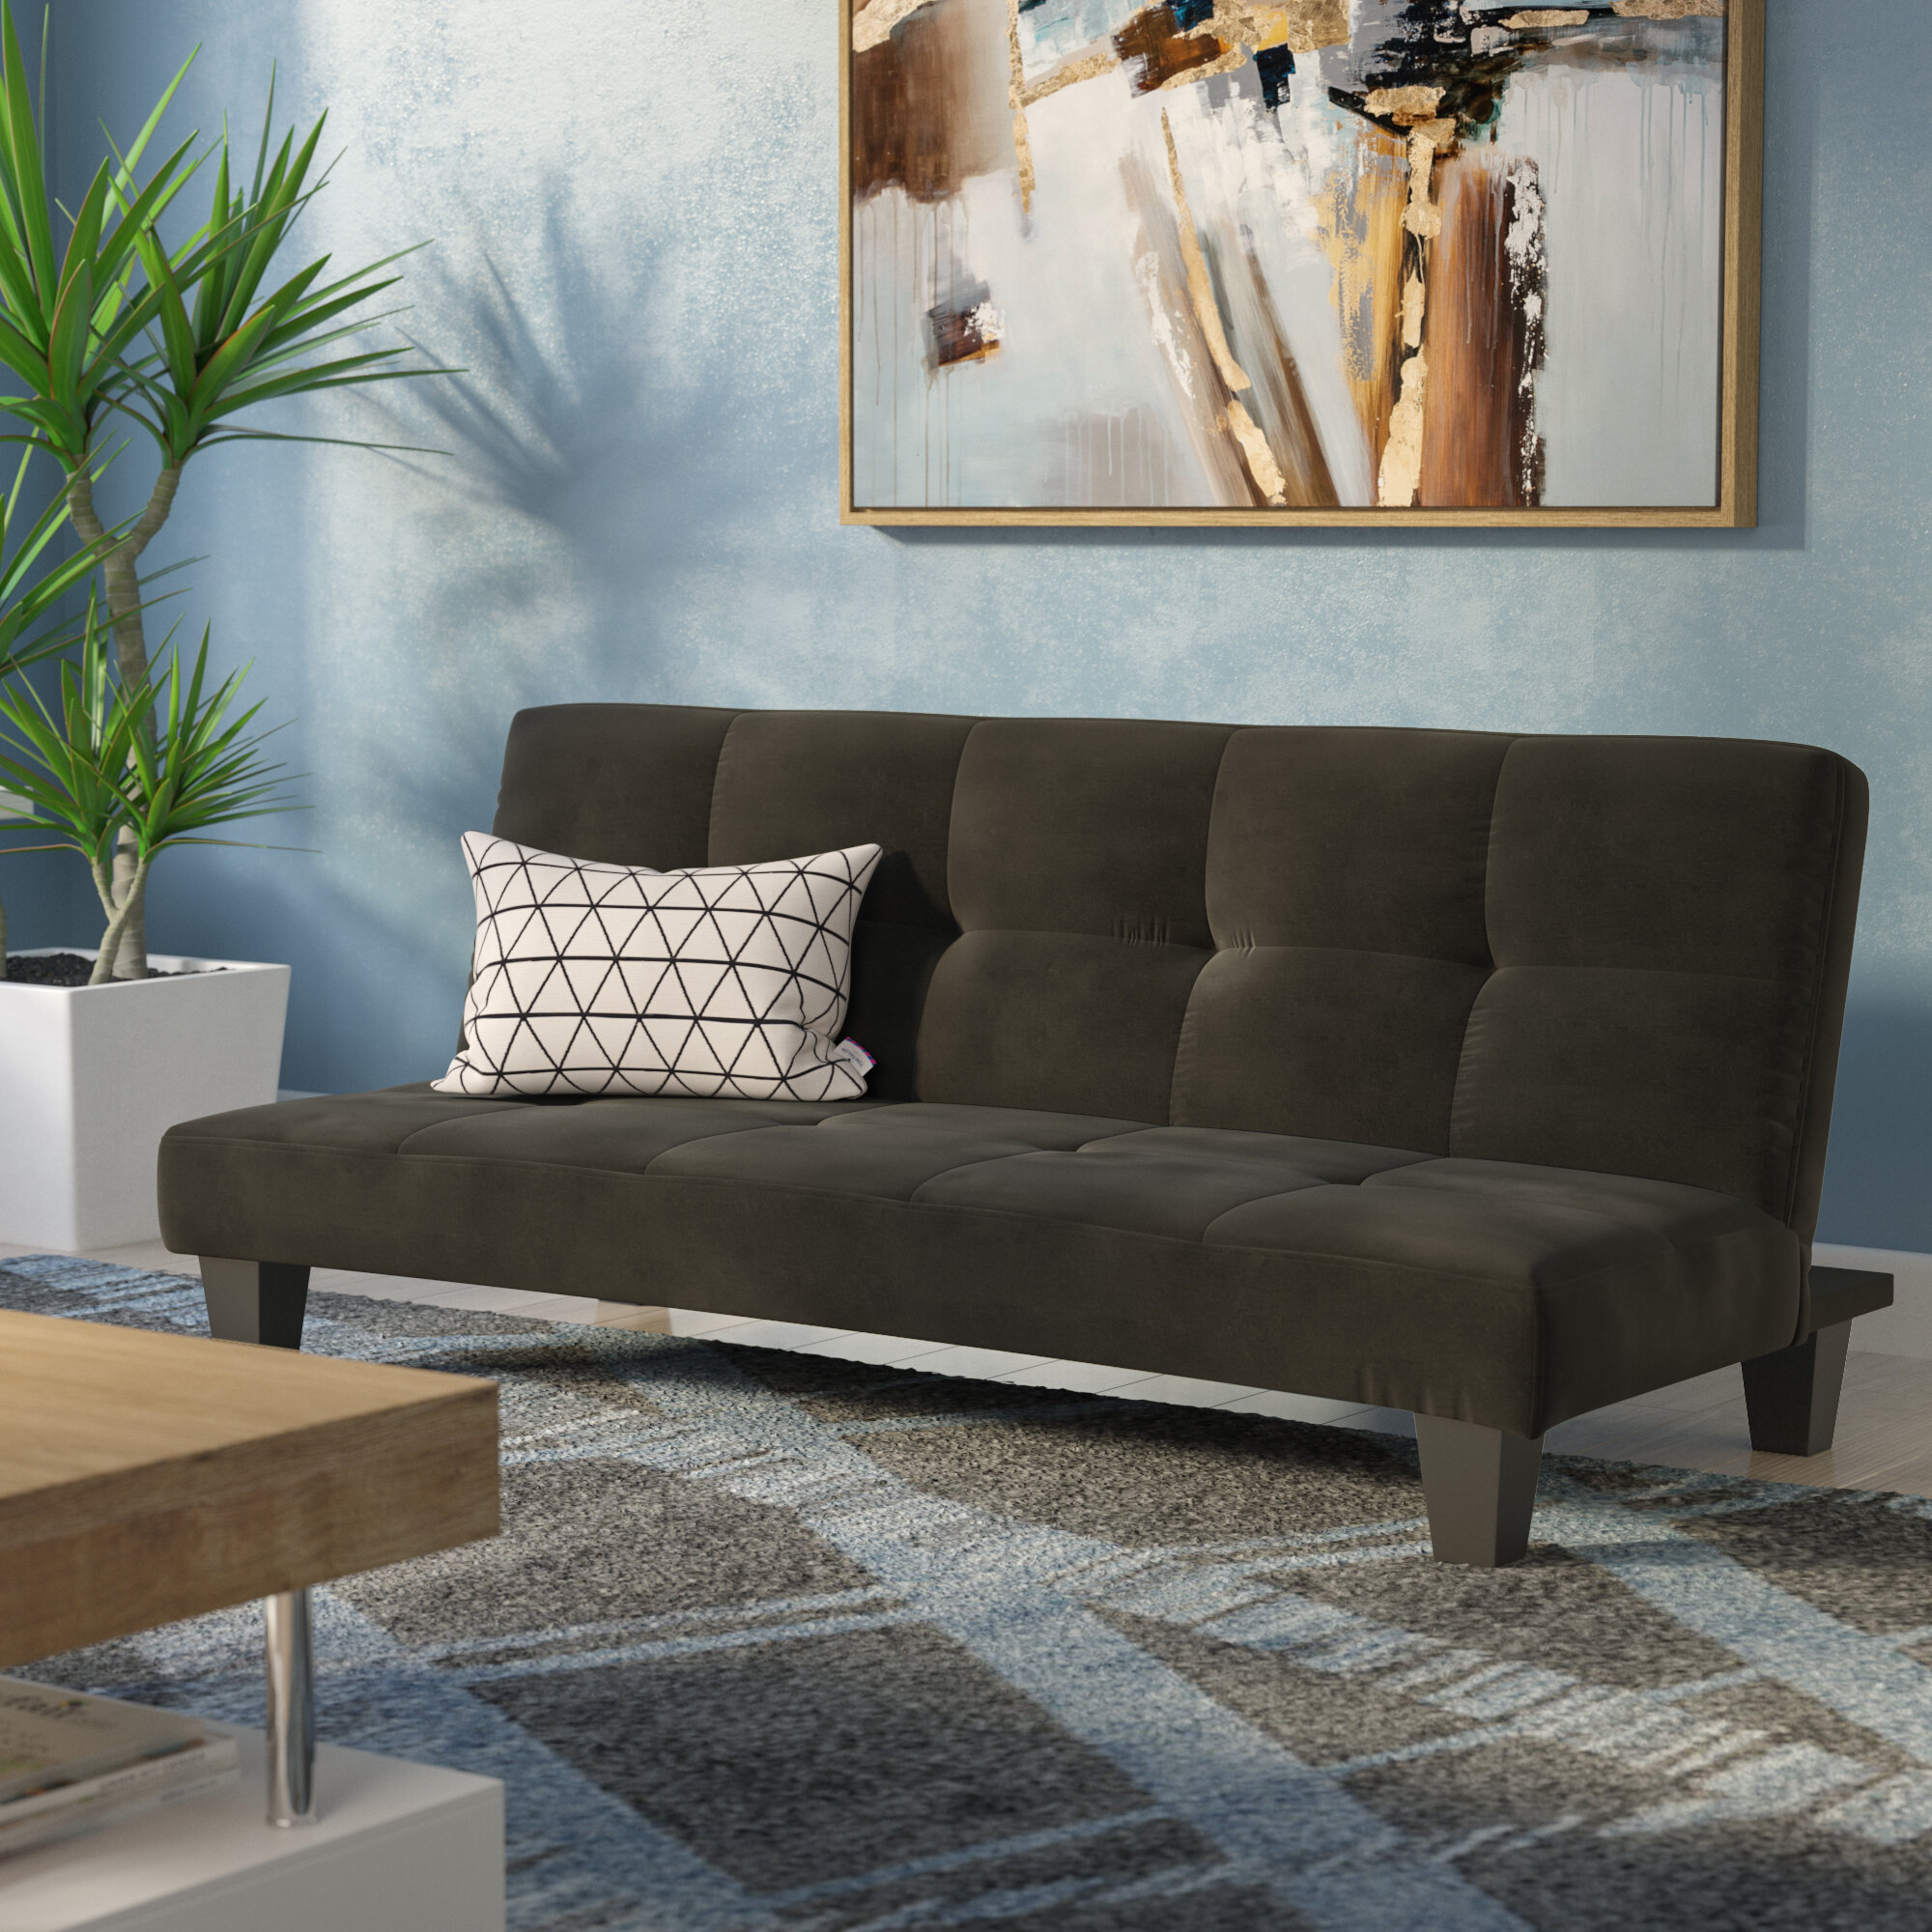 dealepic like you convertible wade for might also tama sleeper sofa readington deal logan